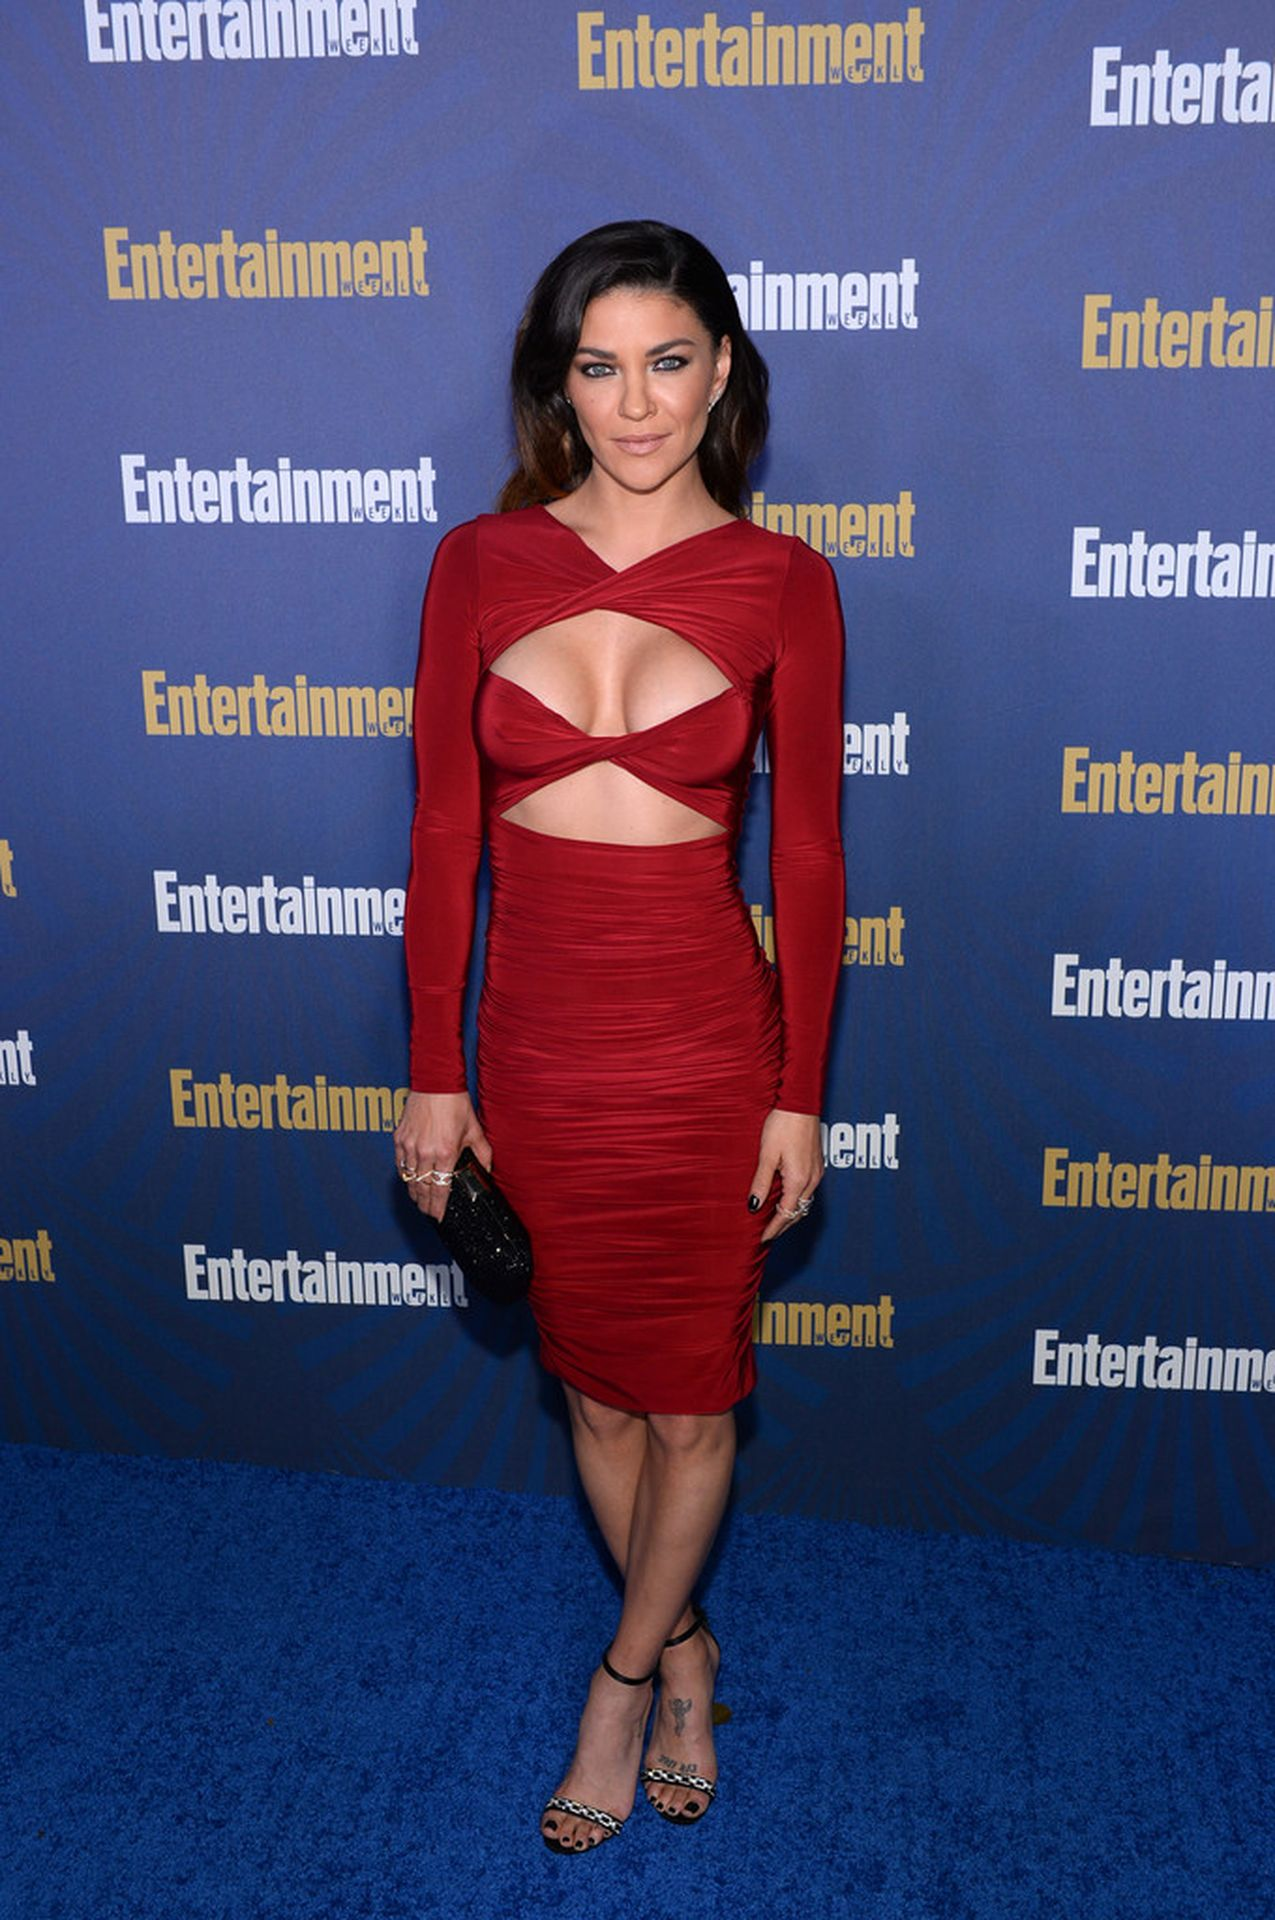 Jessica Szohr Shows Her Cleavage At The Entertainment Weekly Pre Sag Awards Celebration 0019